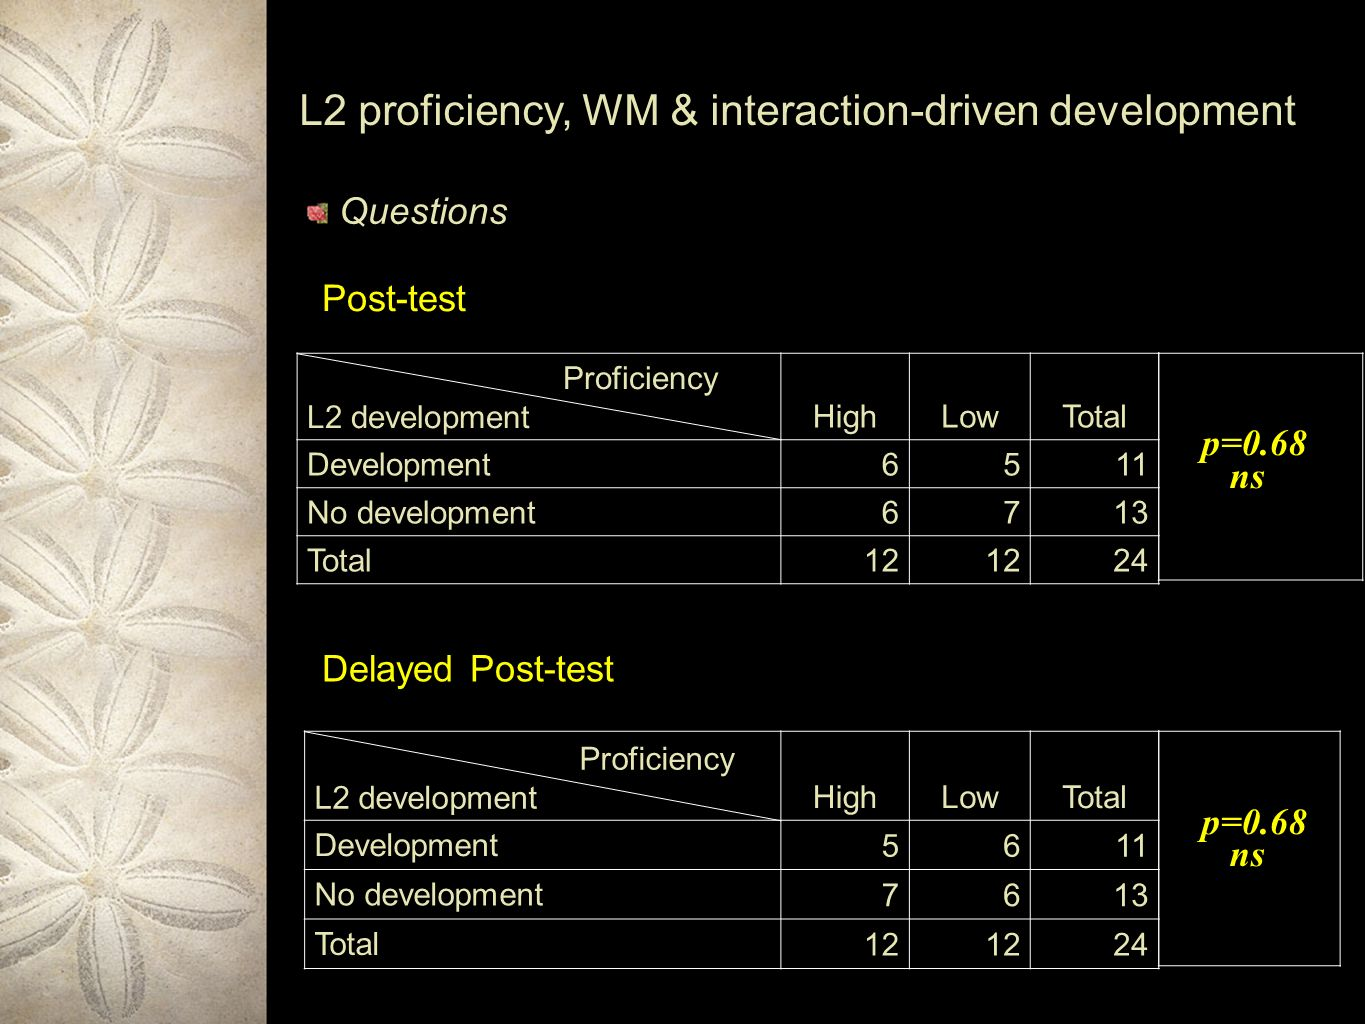 L2 proficiency, WM & interaction-driven development